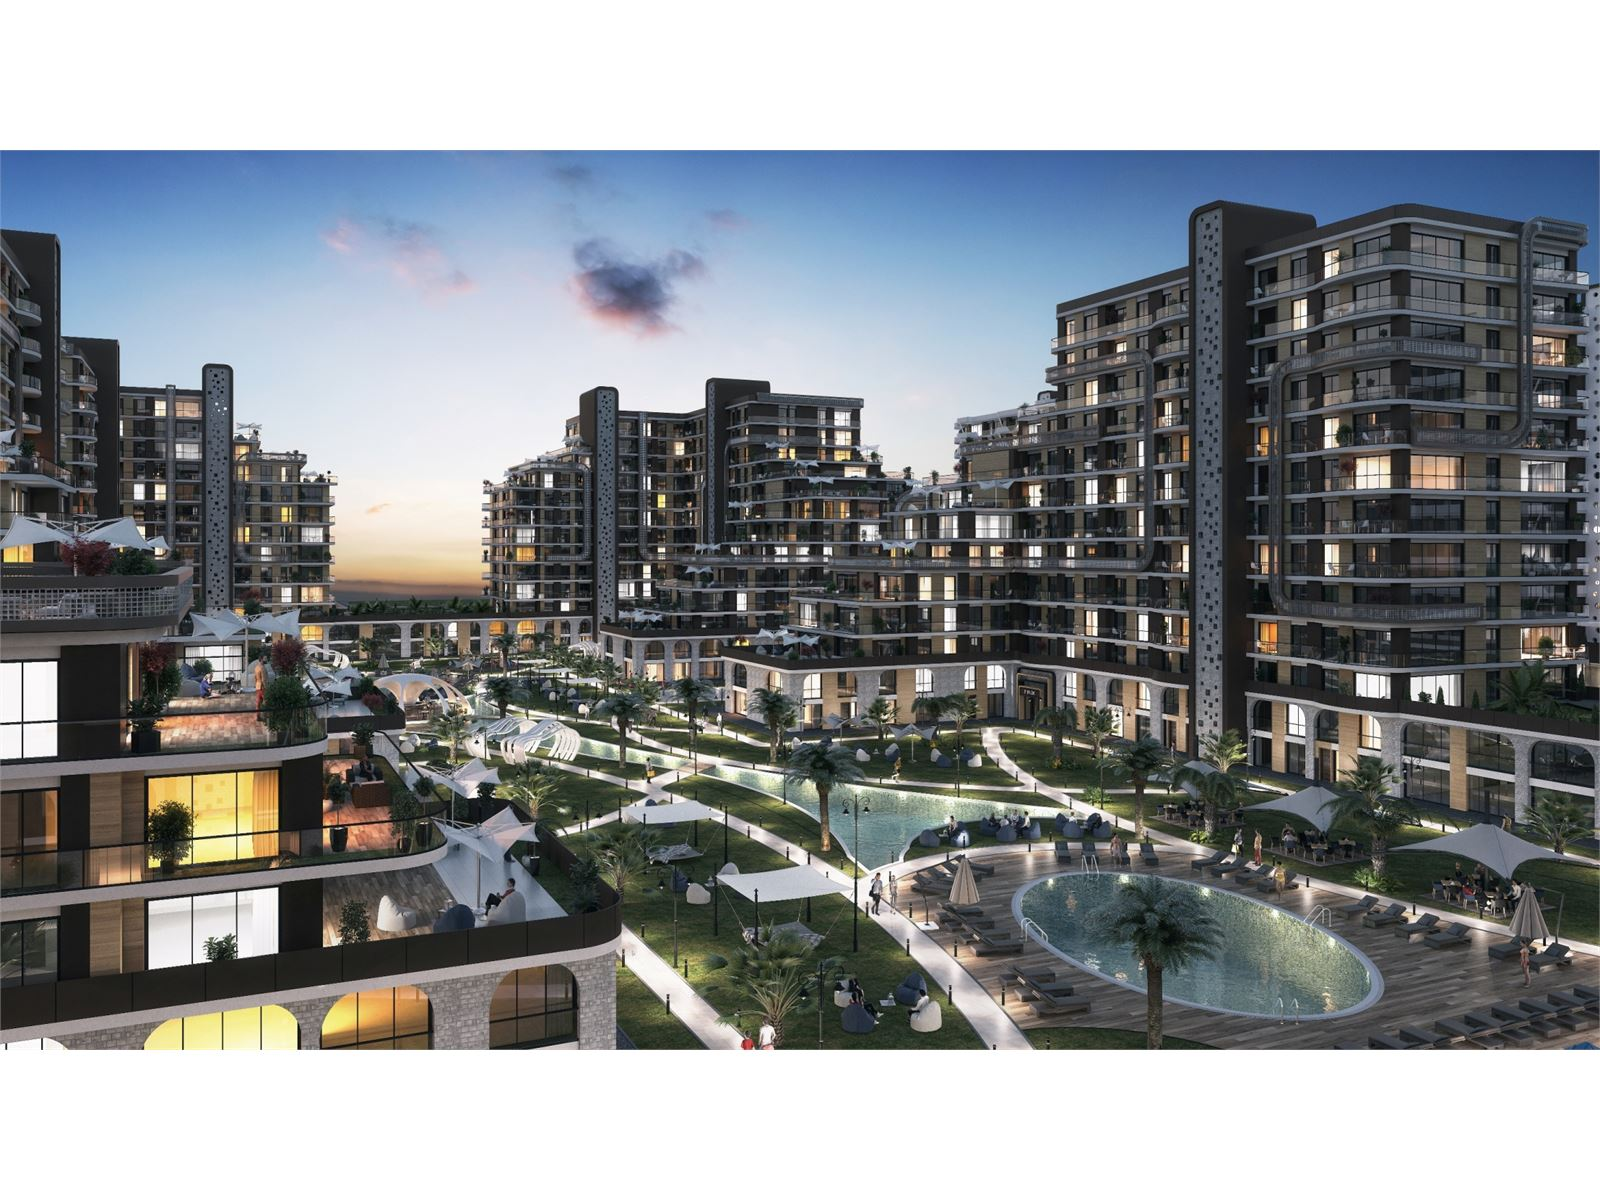 New-era apartments with outdoor shopping mall in Beylikdüzü